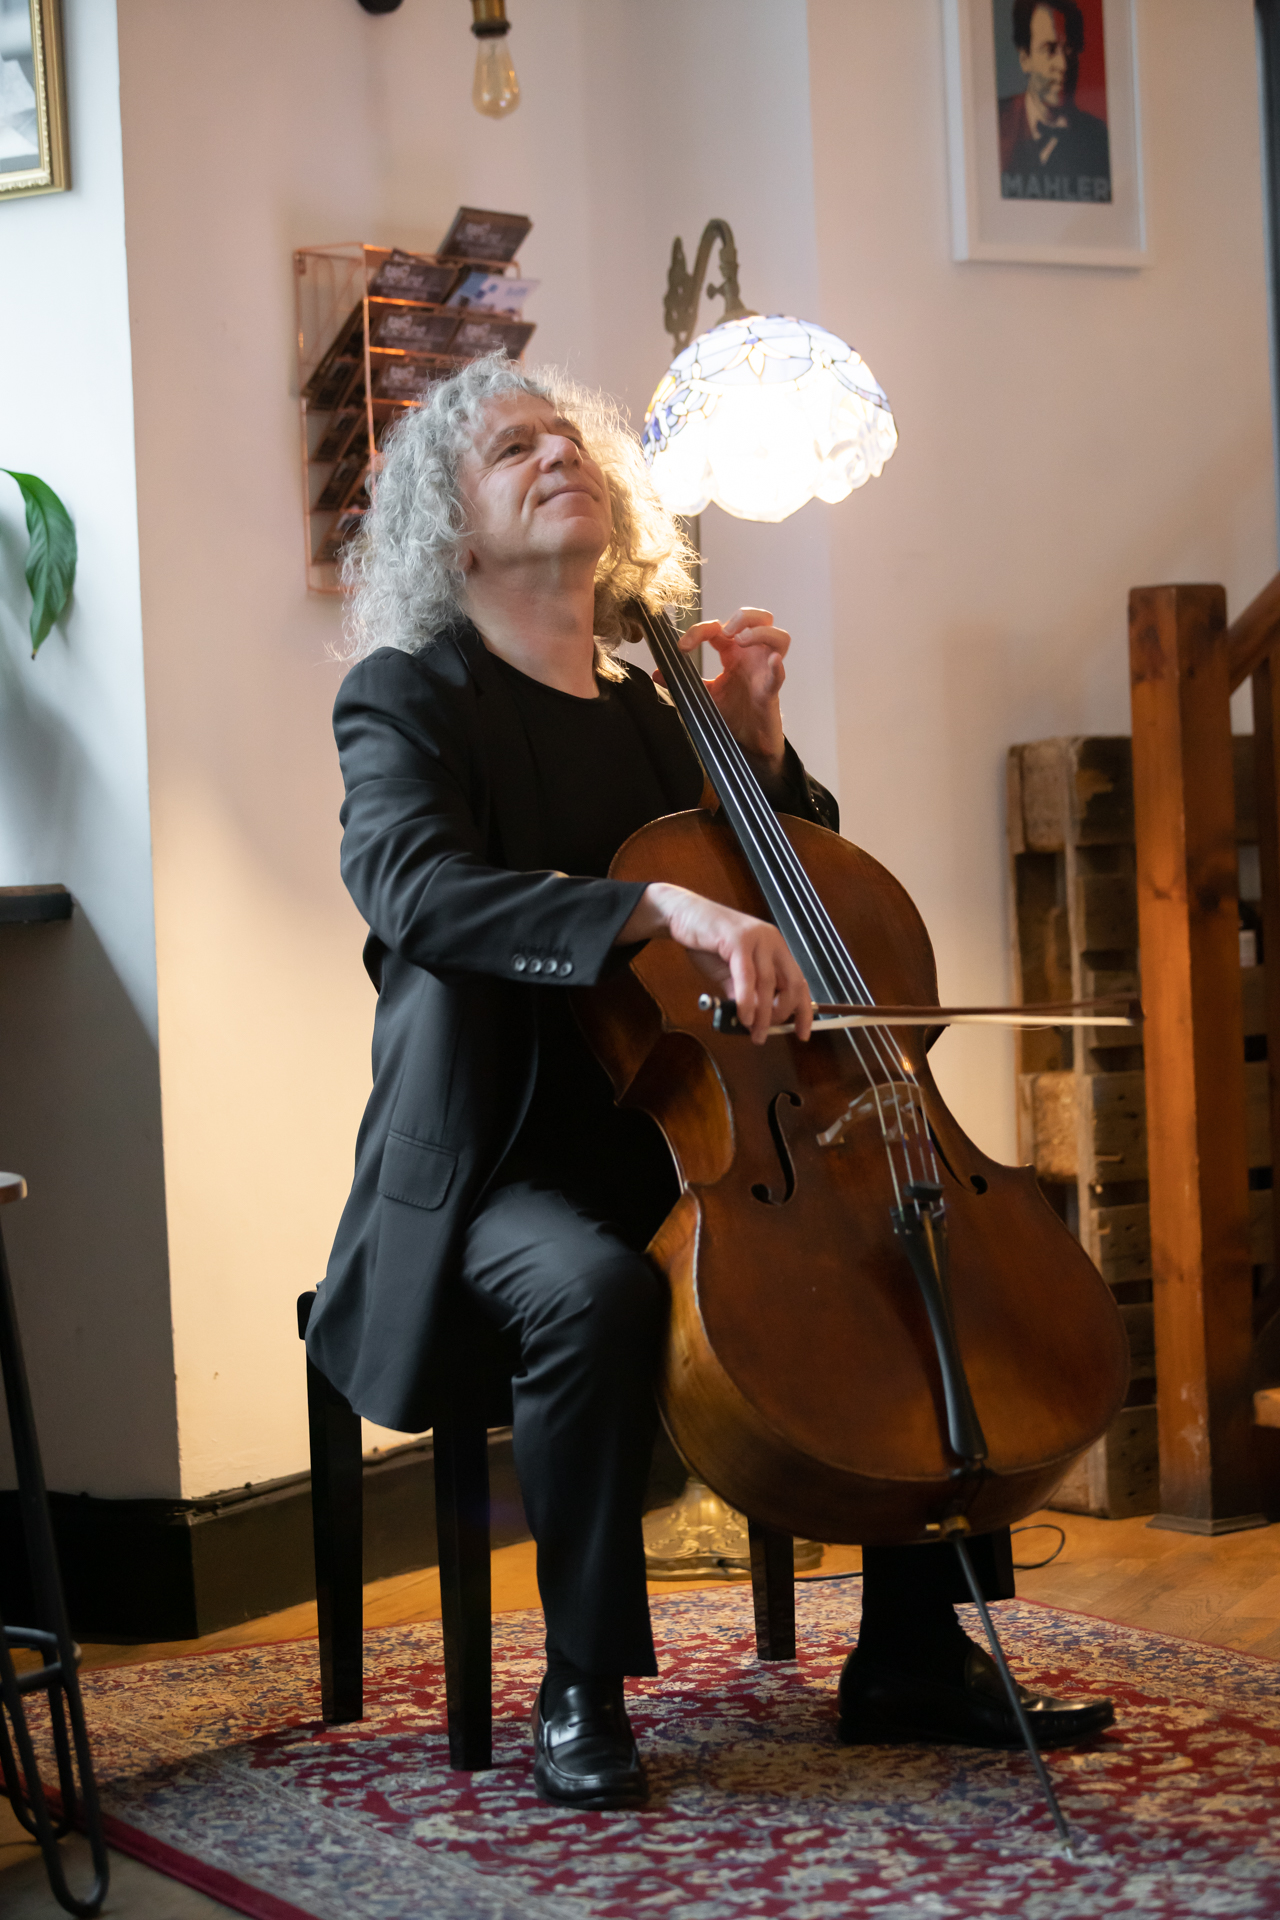 Steven Isserlis at the Fidelio Orchestra Cafe